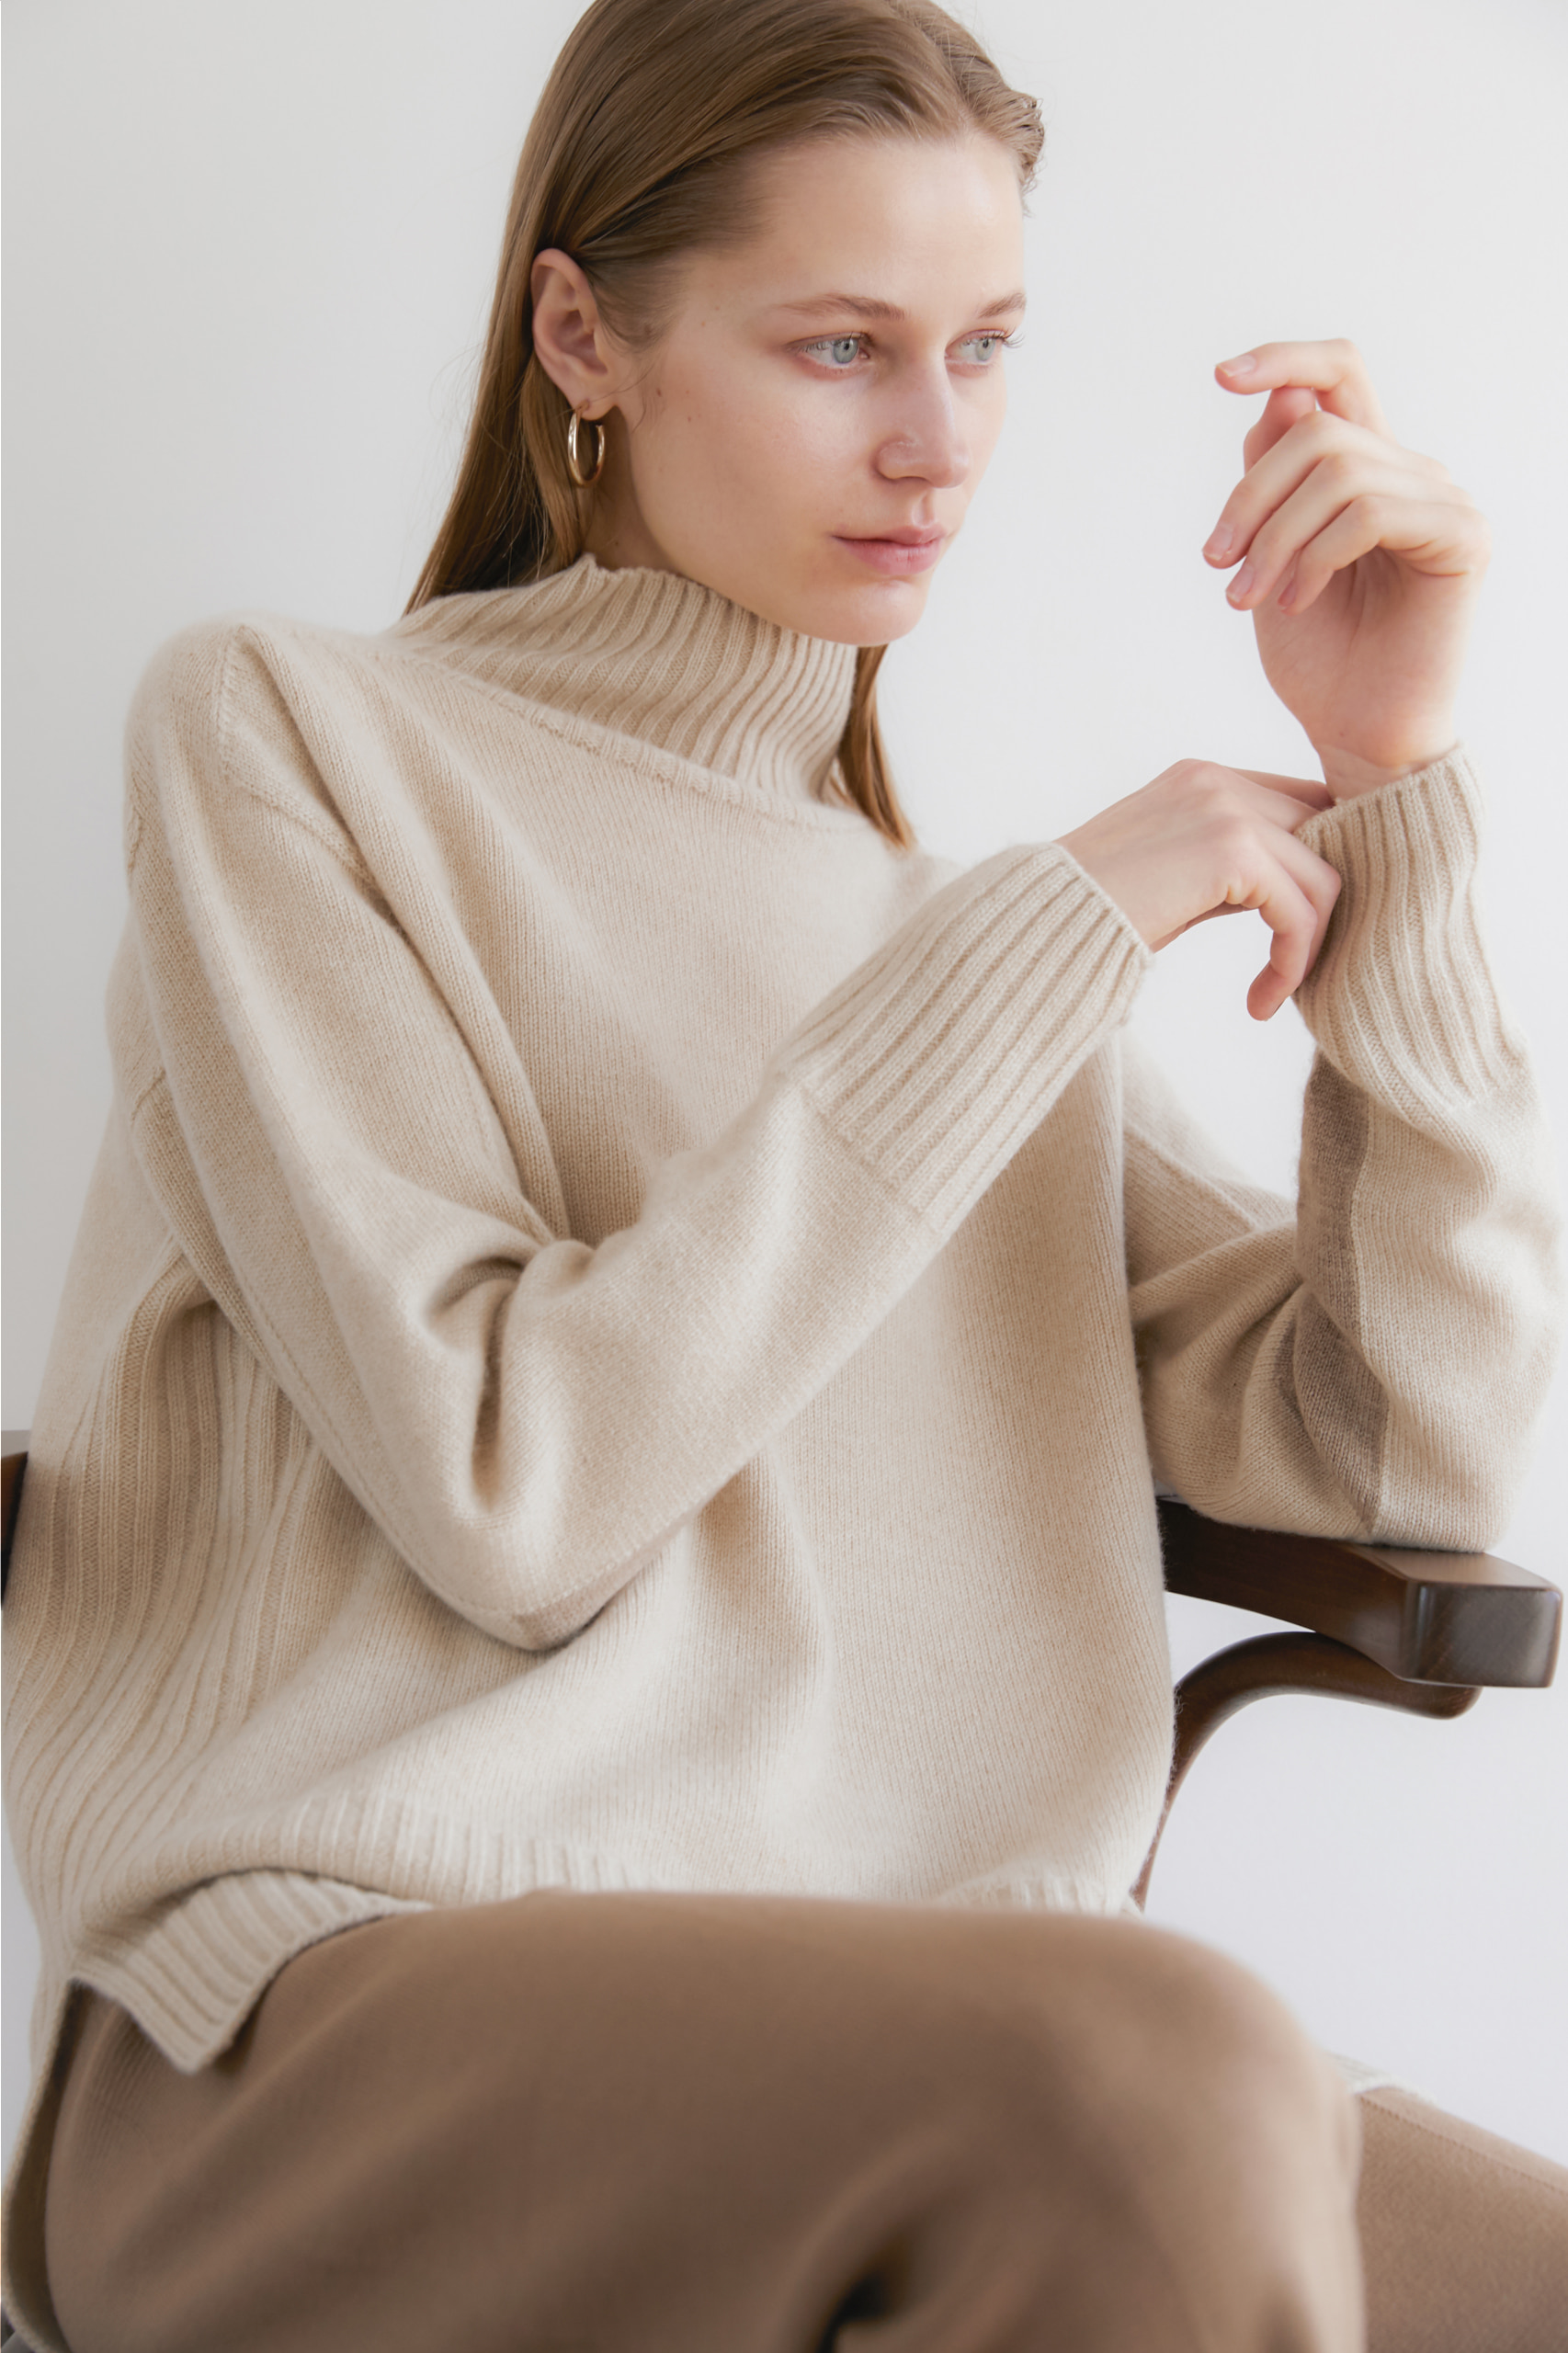 [NAMED collection - 로로피아나] 프리미엄 퓨어 캐시미어100 홀가먼트 컬러블럭 풀오버 [Pure cashmere100 whole-garment knitting turtleneck pullover - Oatmeal beige]